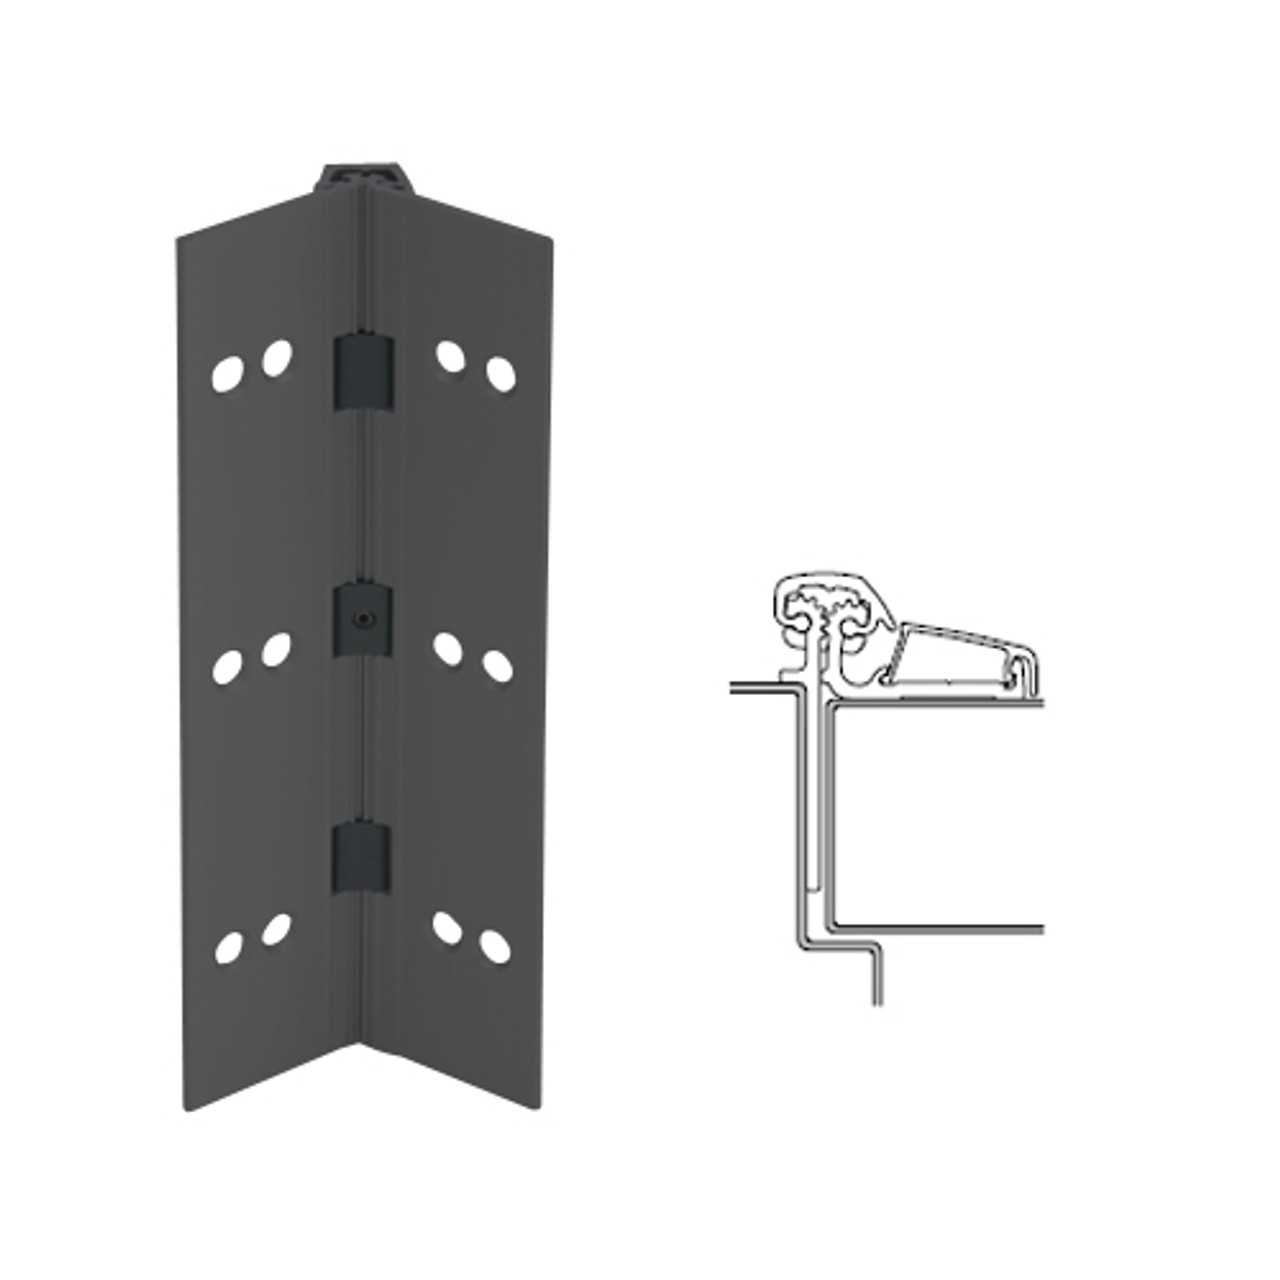 053XY-315AN-120 IVES Adjustable Half Surface Continuous Geared Hinges in Anodized Black